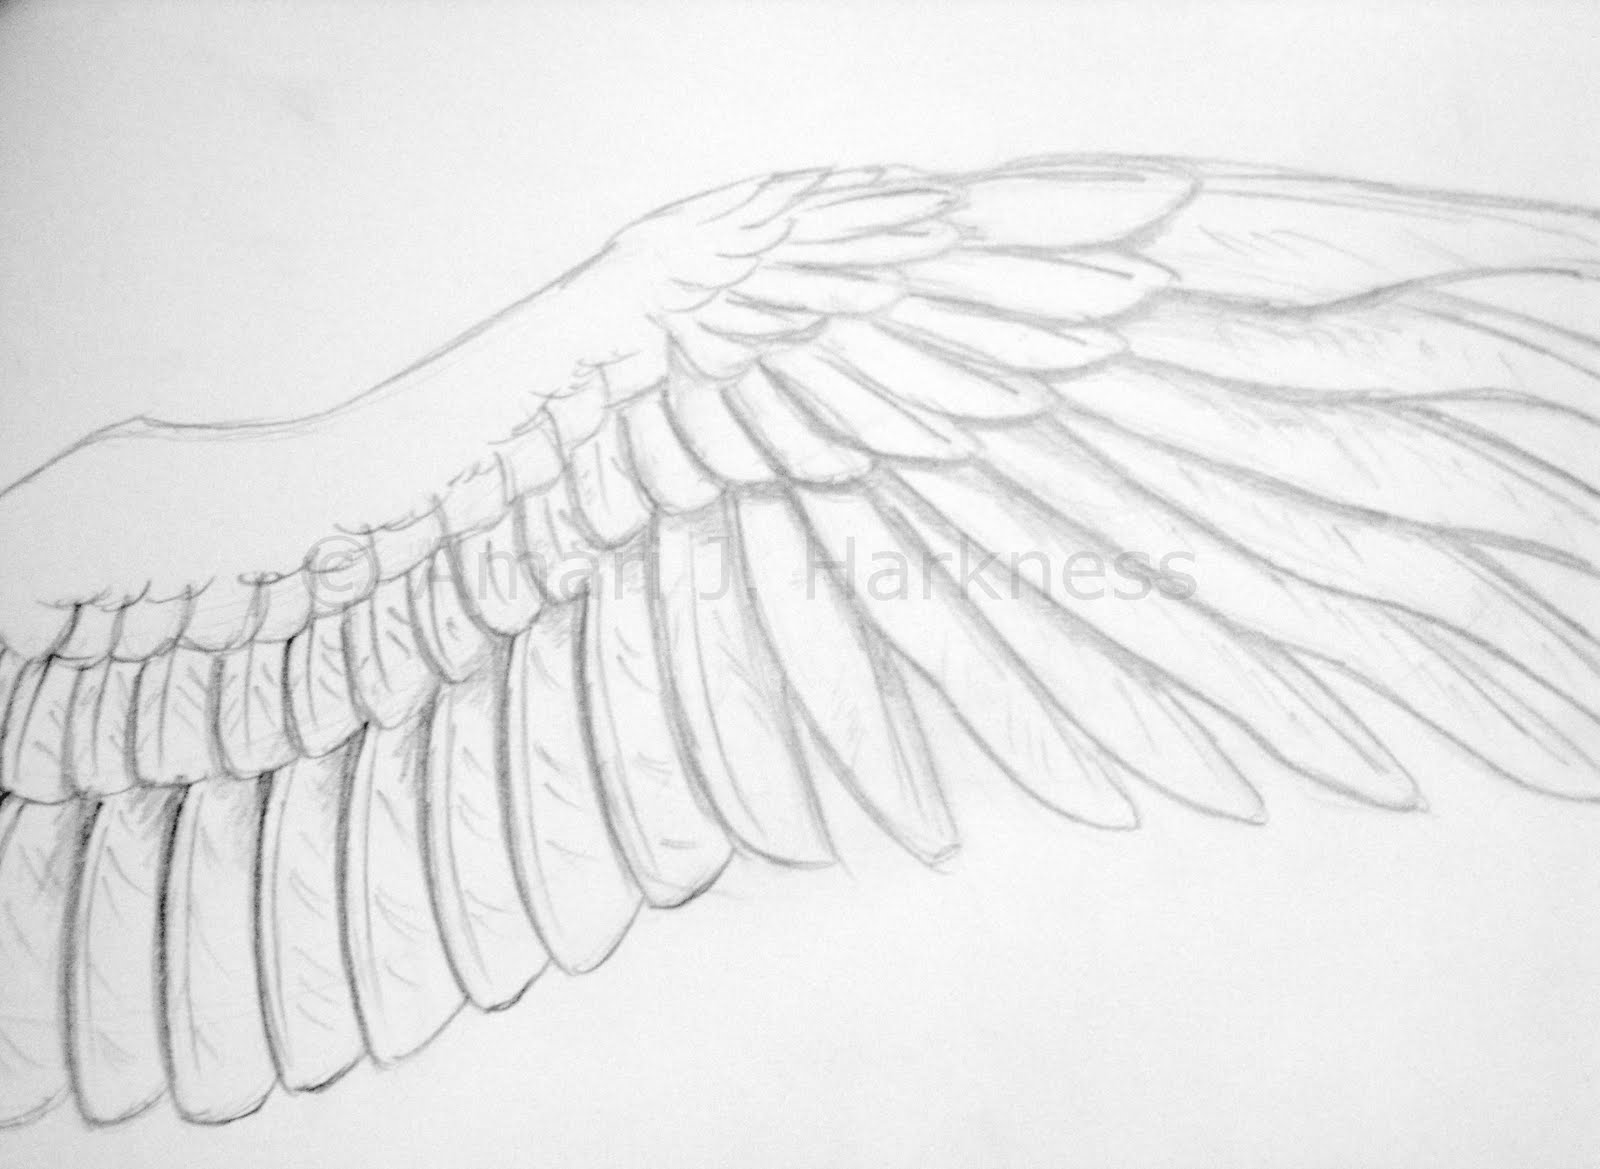 duck wing diagram led strip lights wiring sketching with reckless abandon drawing bird wings random of a from memory yeeah i needed those tutorials